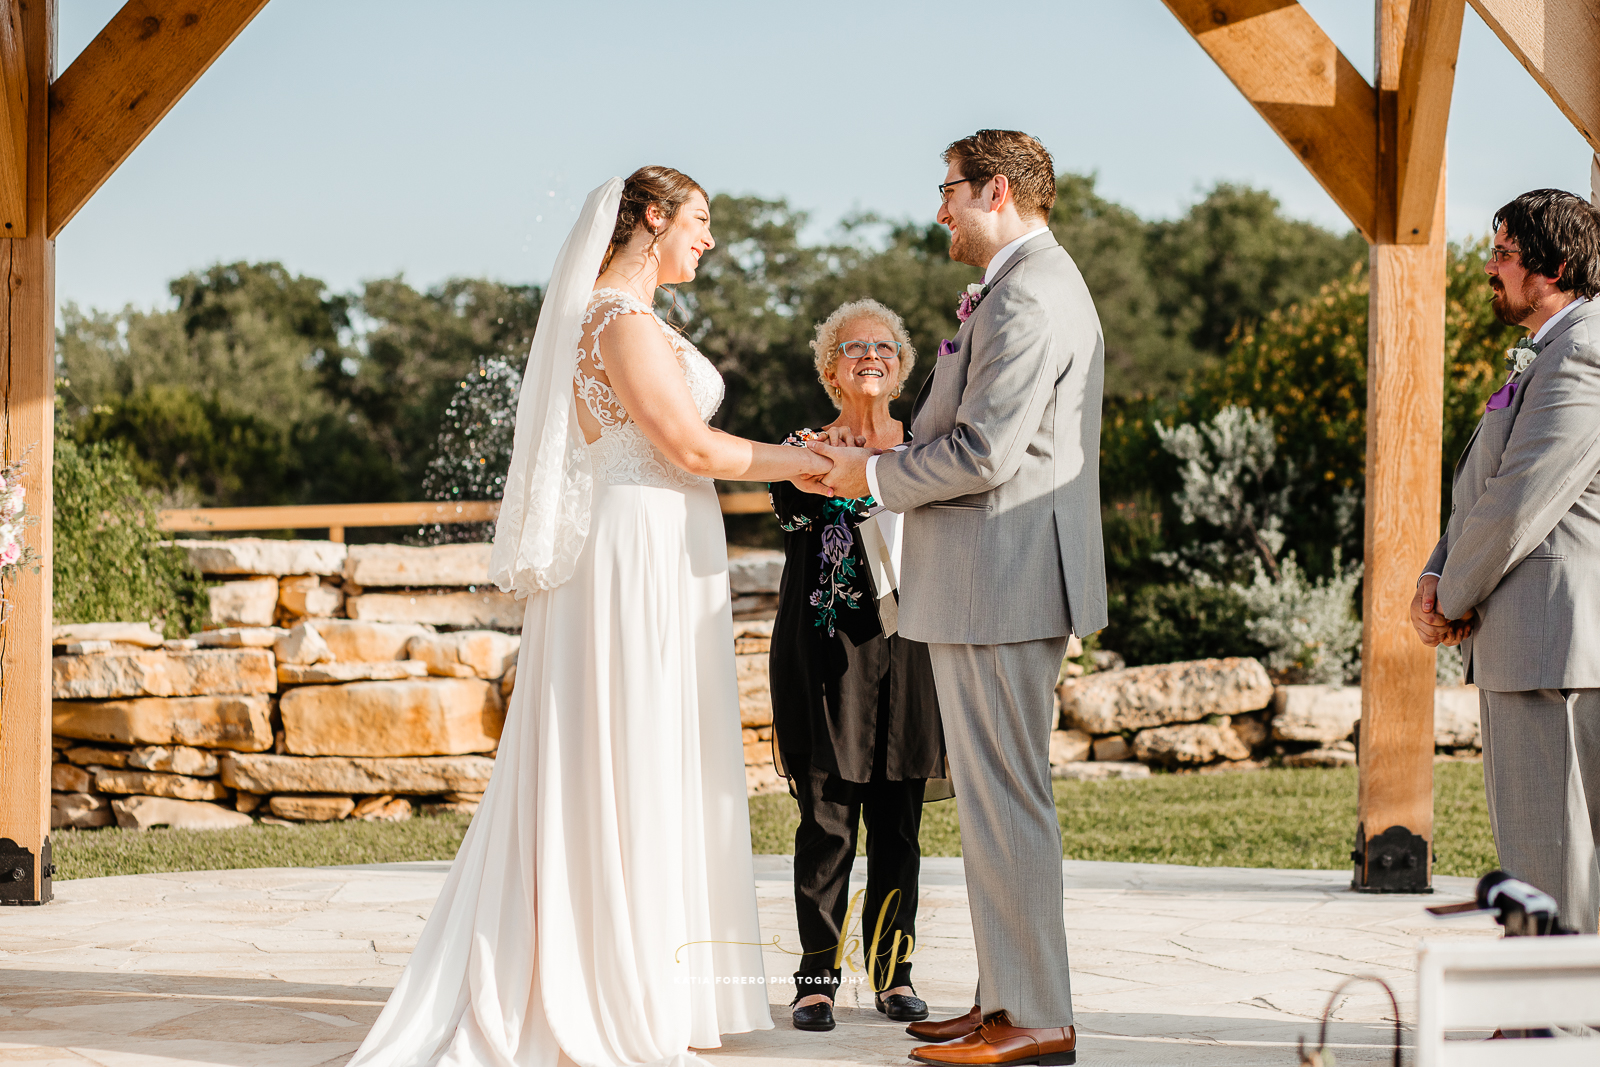 wedding officiants in austin